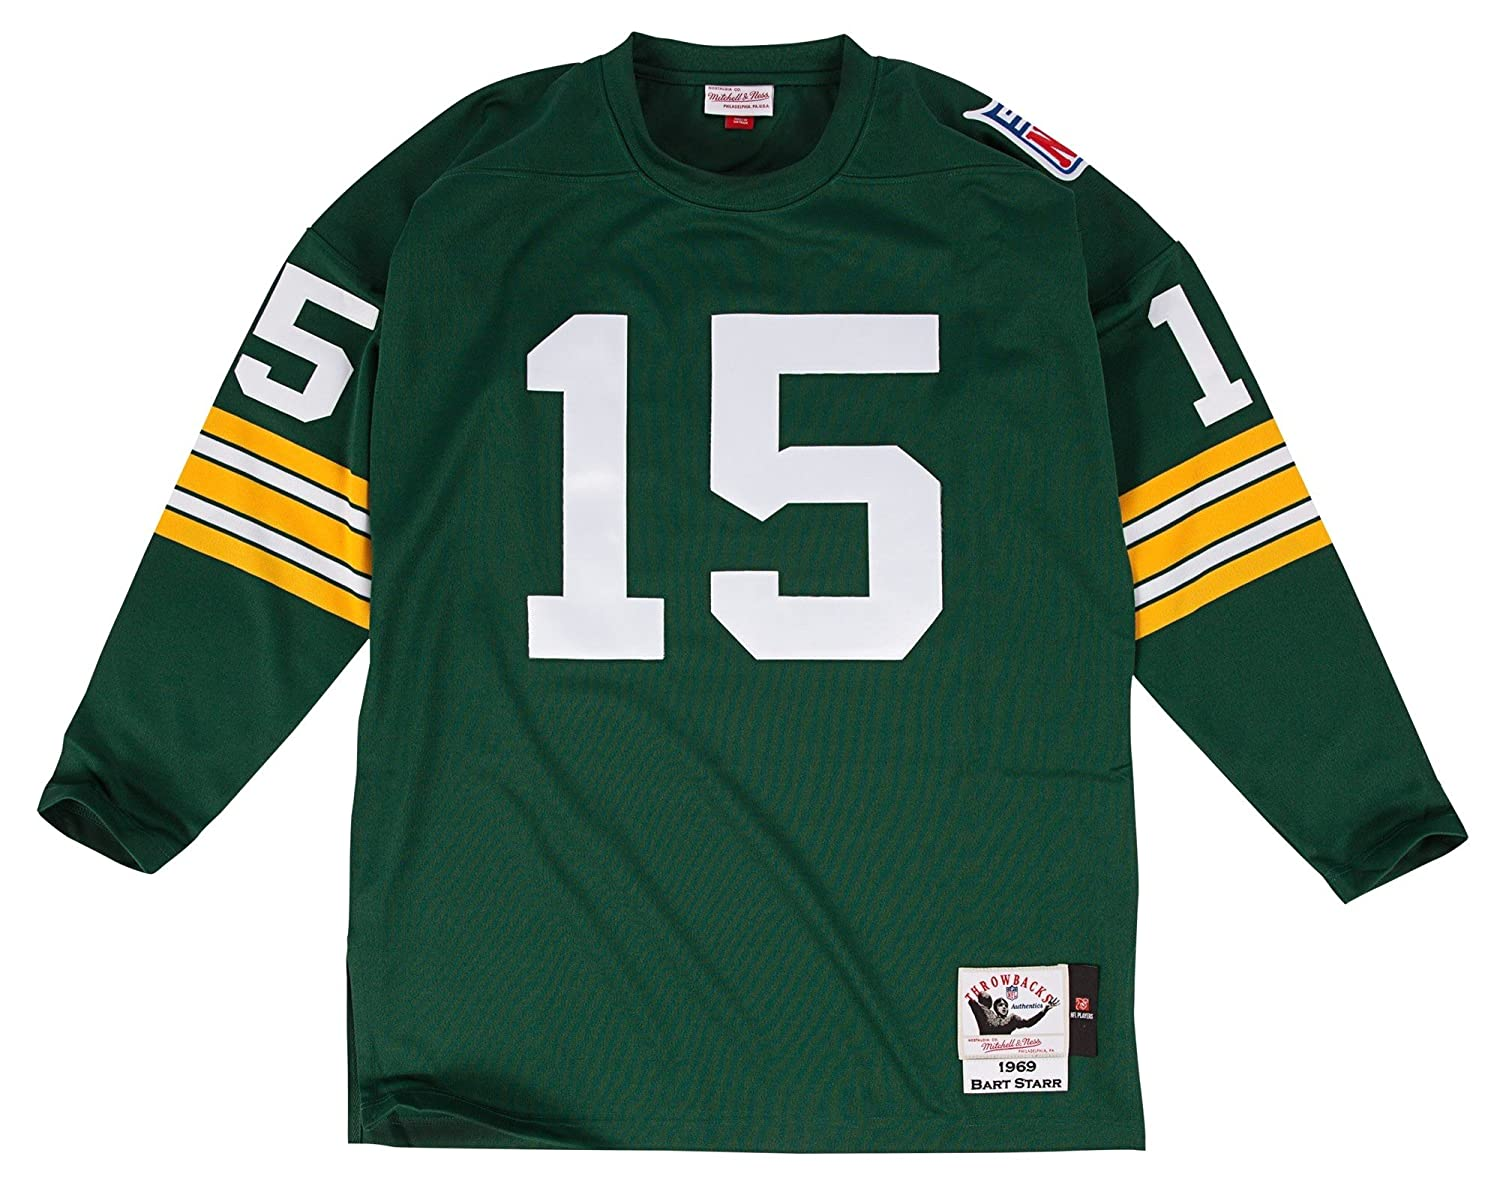 1cfeb02eaa1 Amazon.com   Mitchell   Ness Bart Starr Green Bay Packers Authentic 1969  Green NFL Jersey   Sports   Outdoors